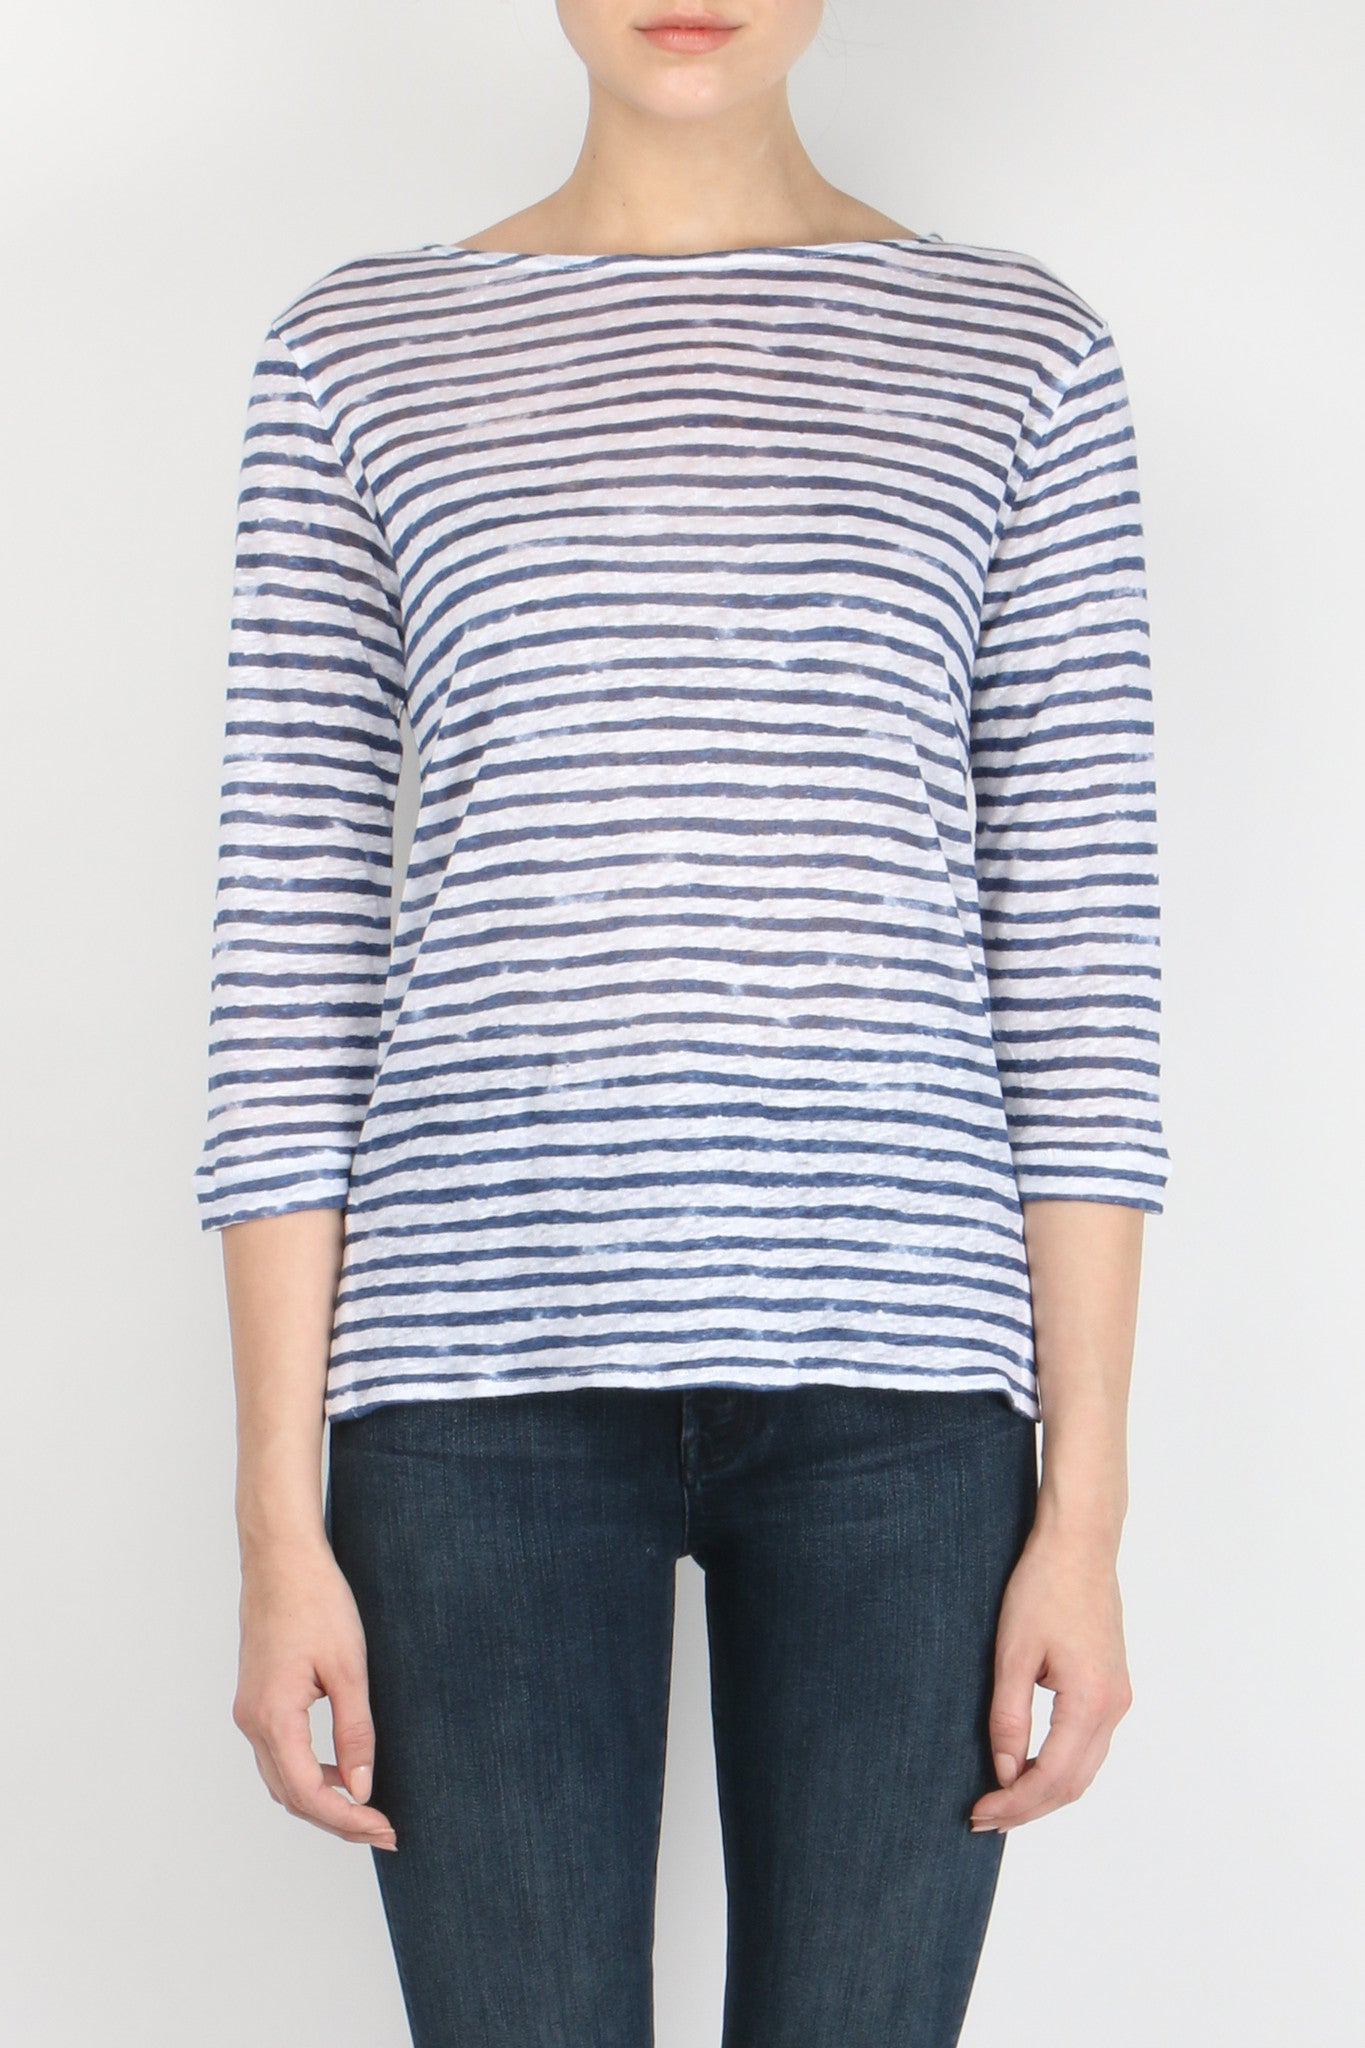 Majestic Filatures Linen Striped Boatneck